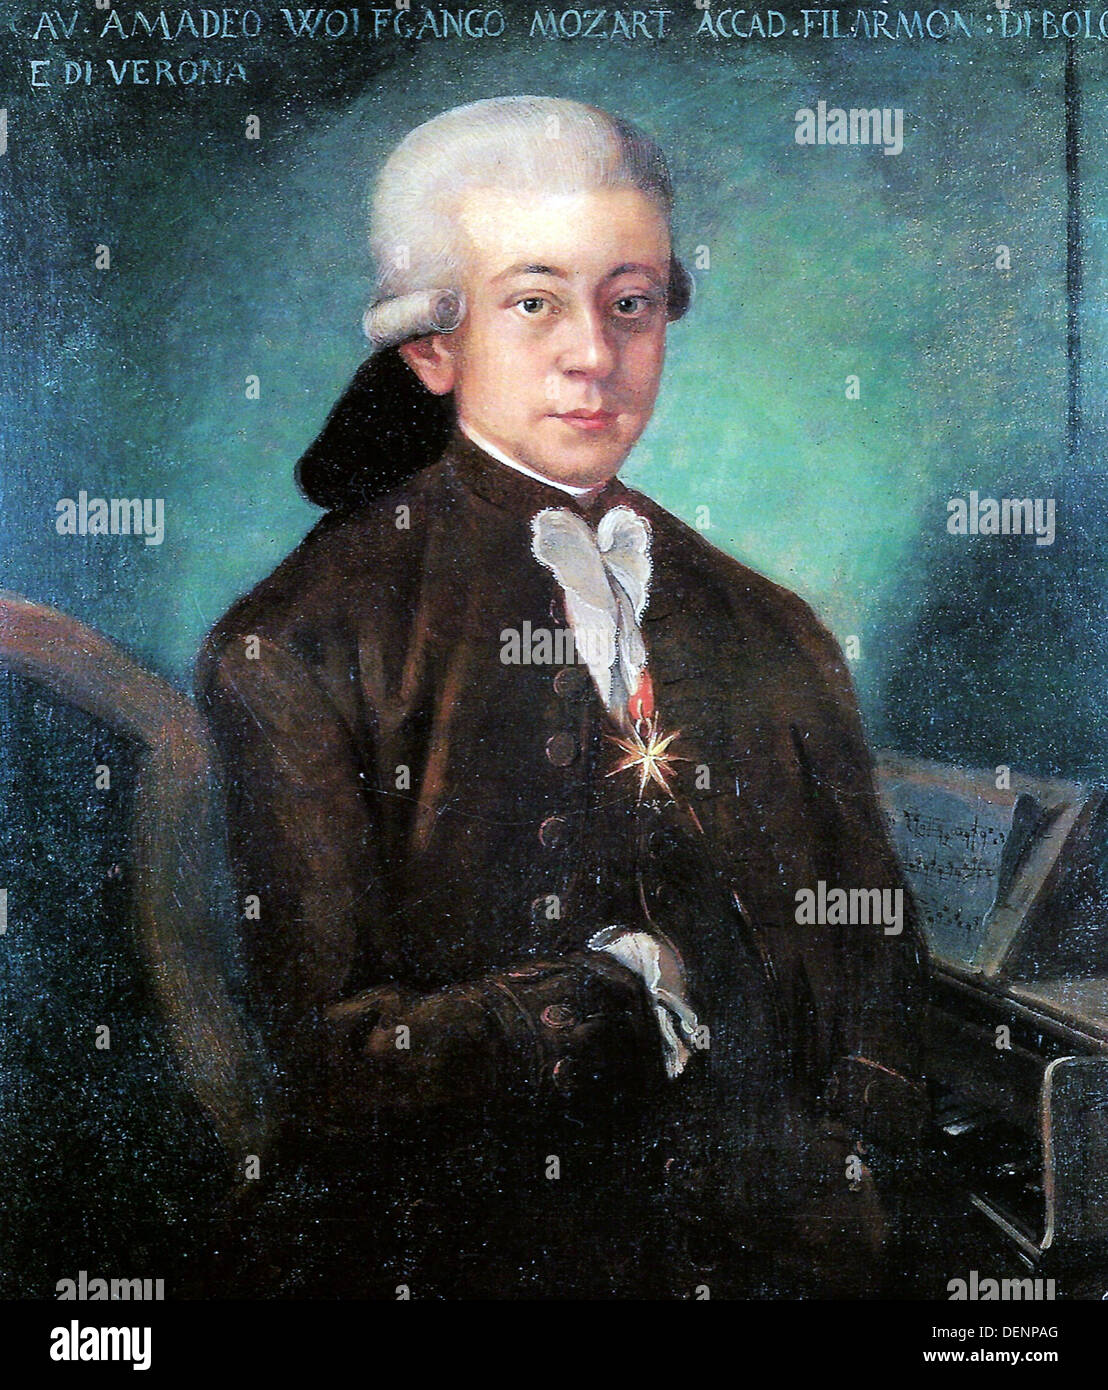 Wolfgang Amadeus Mozart, composer as a boy - Stock Image